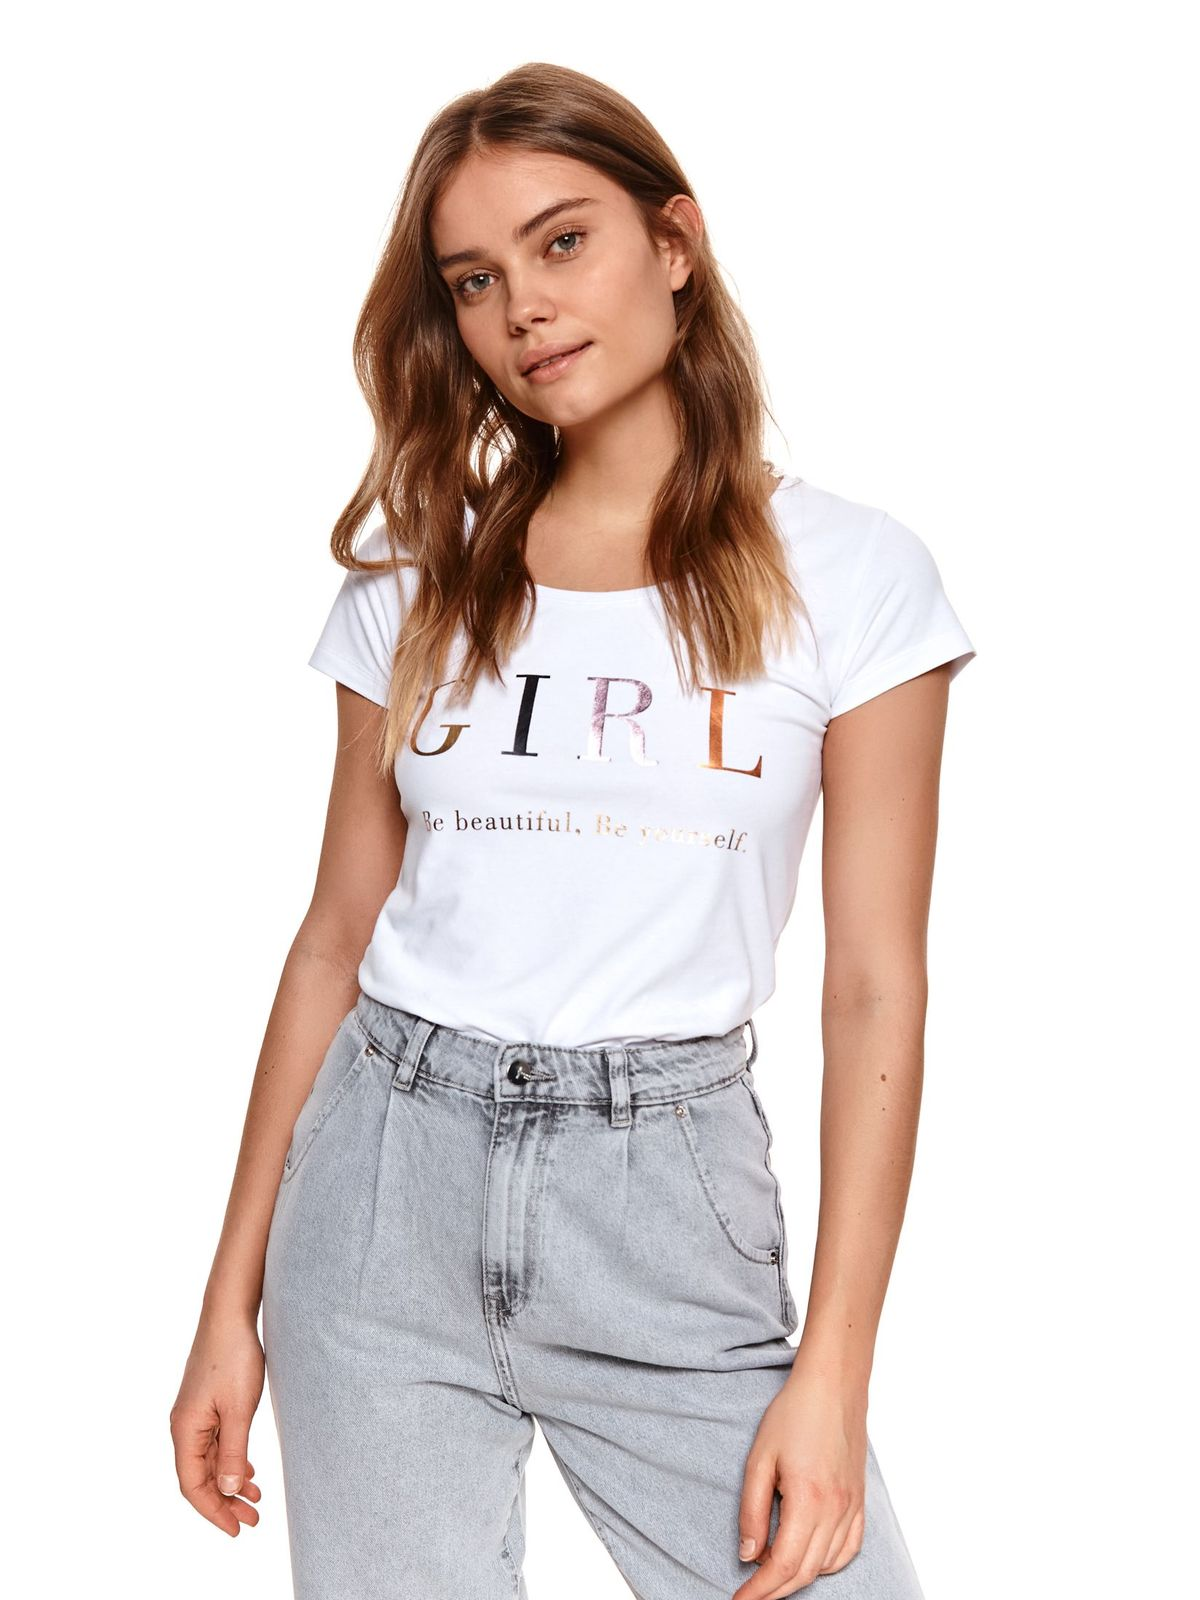 White t-shirt cotton loose fit short sleeves